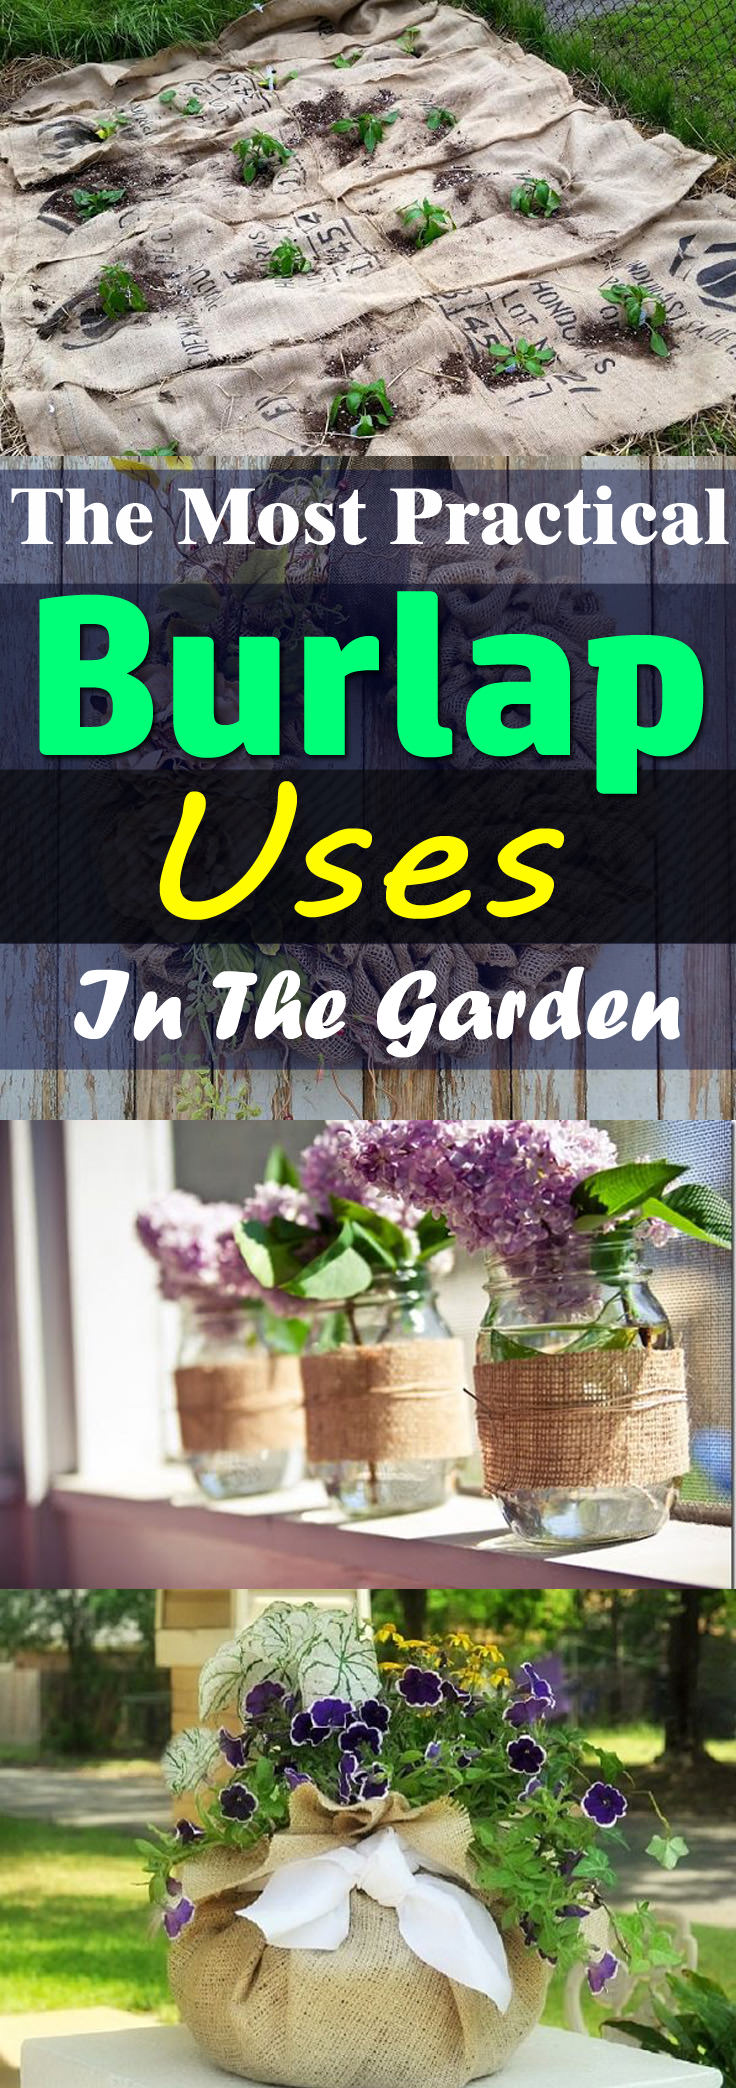 From The Most Practical Burlap Uses To The DIY And Crafts For Home And  Garden,